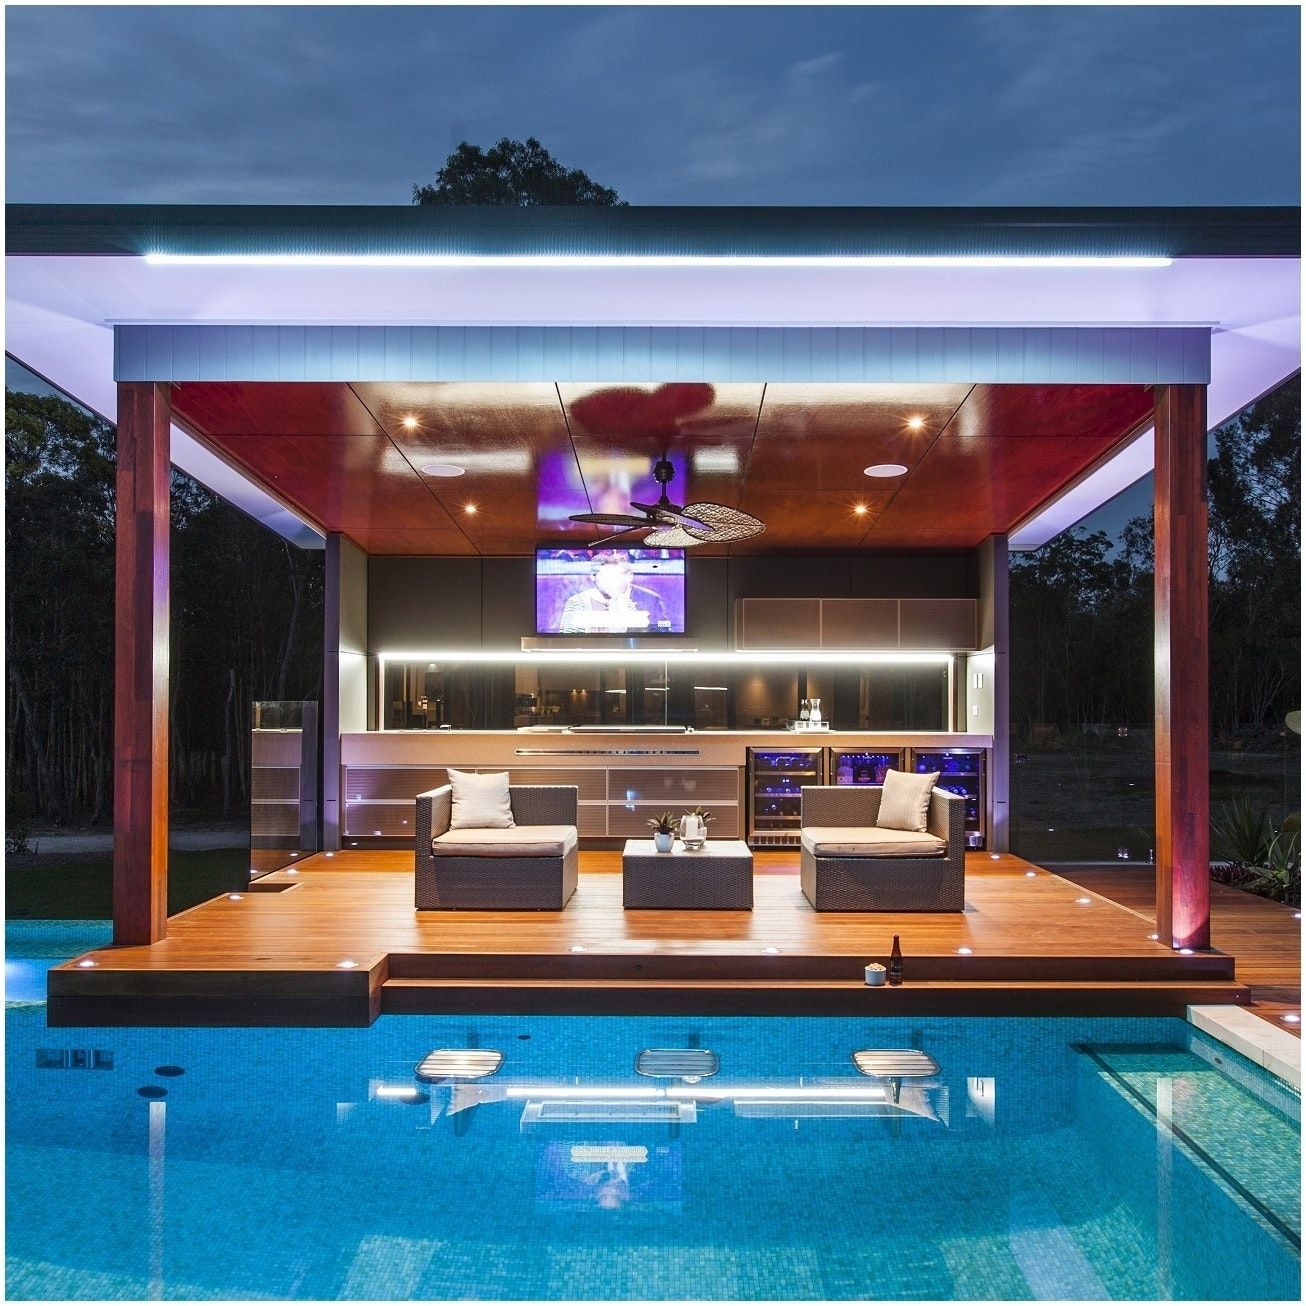 Backyards Awesome Backyard Designs With Pool And Outdoor Kitchen